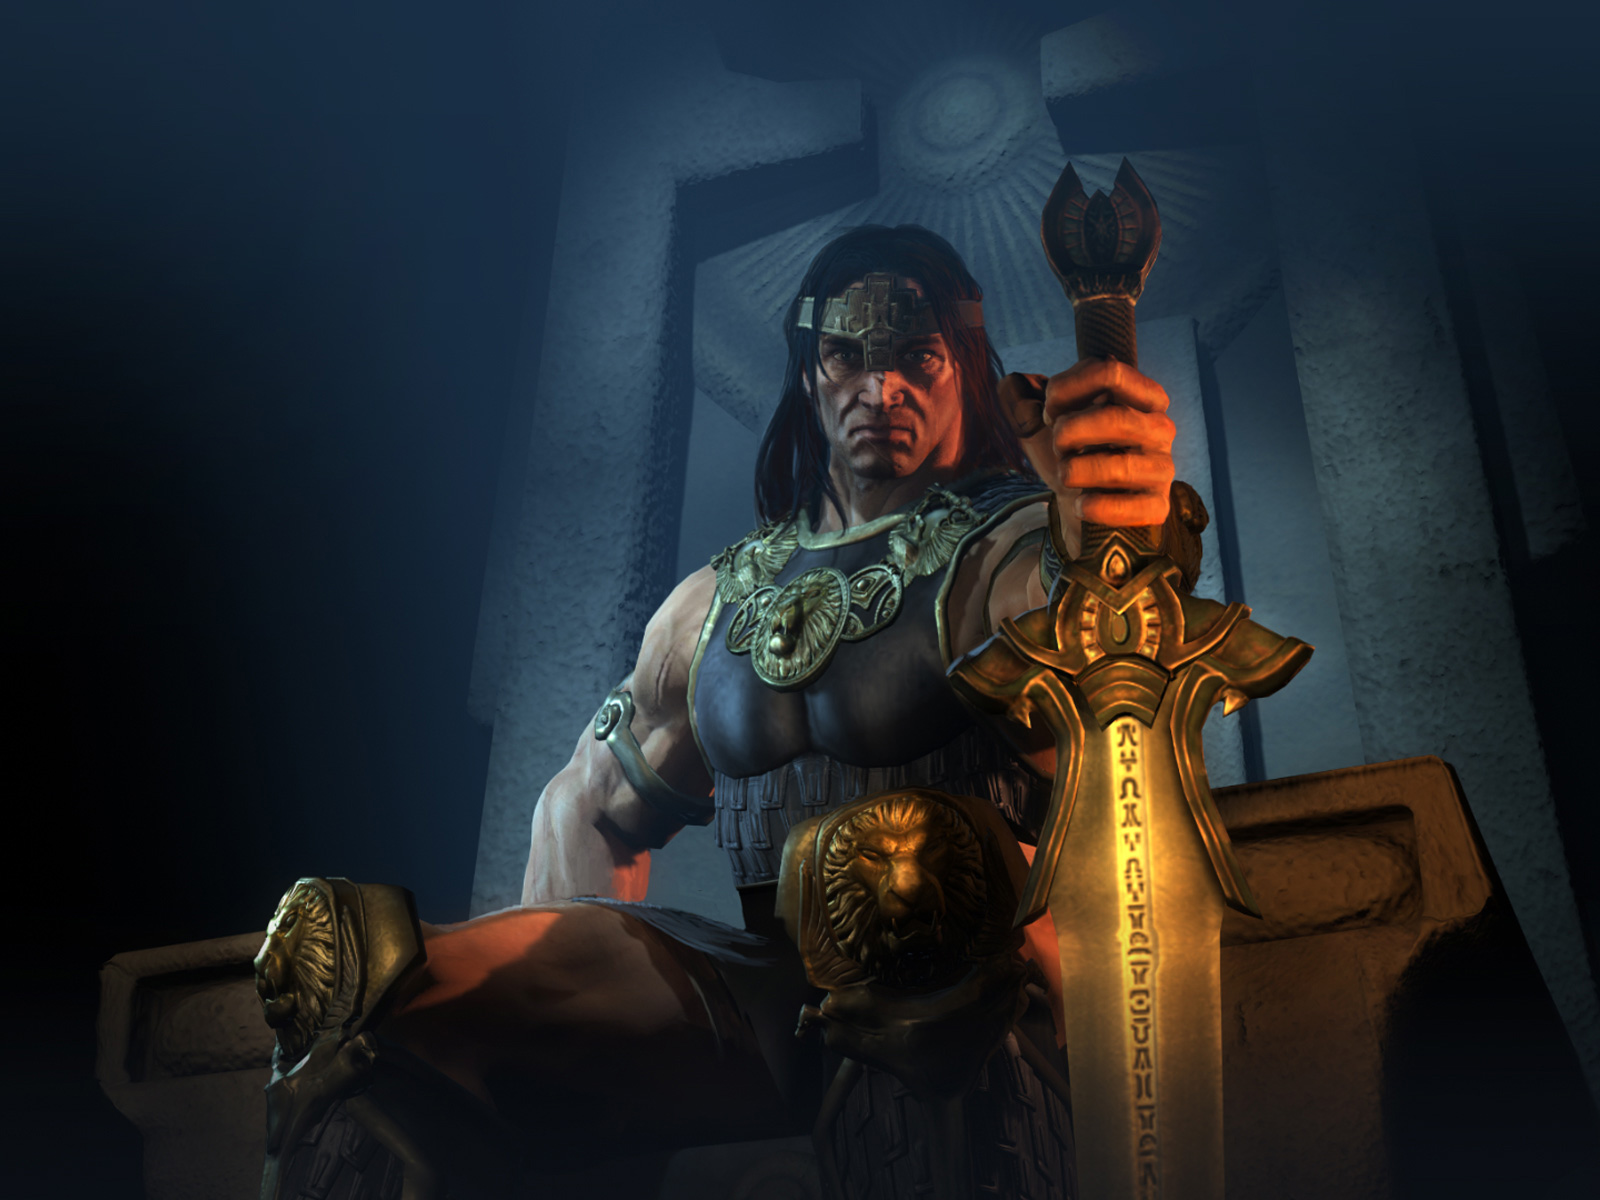 Age of conan crafting - 24